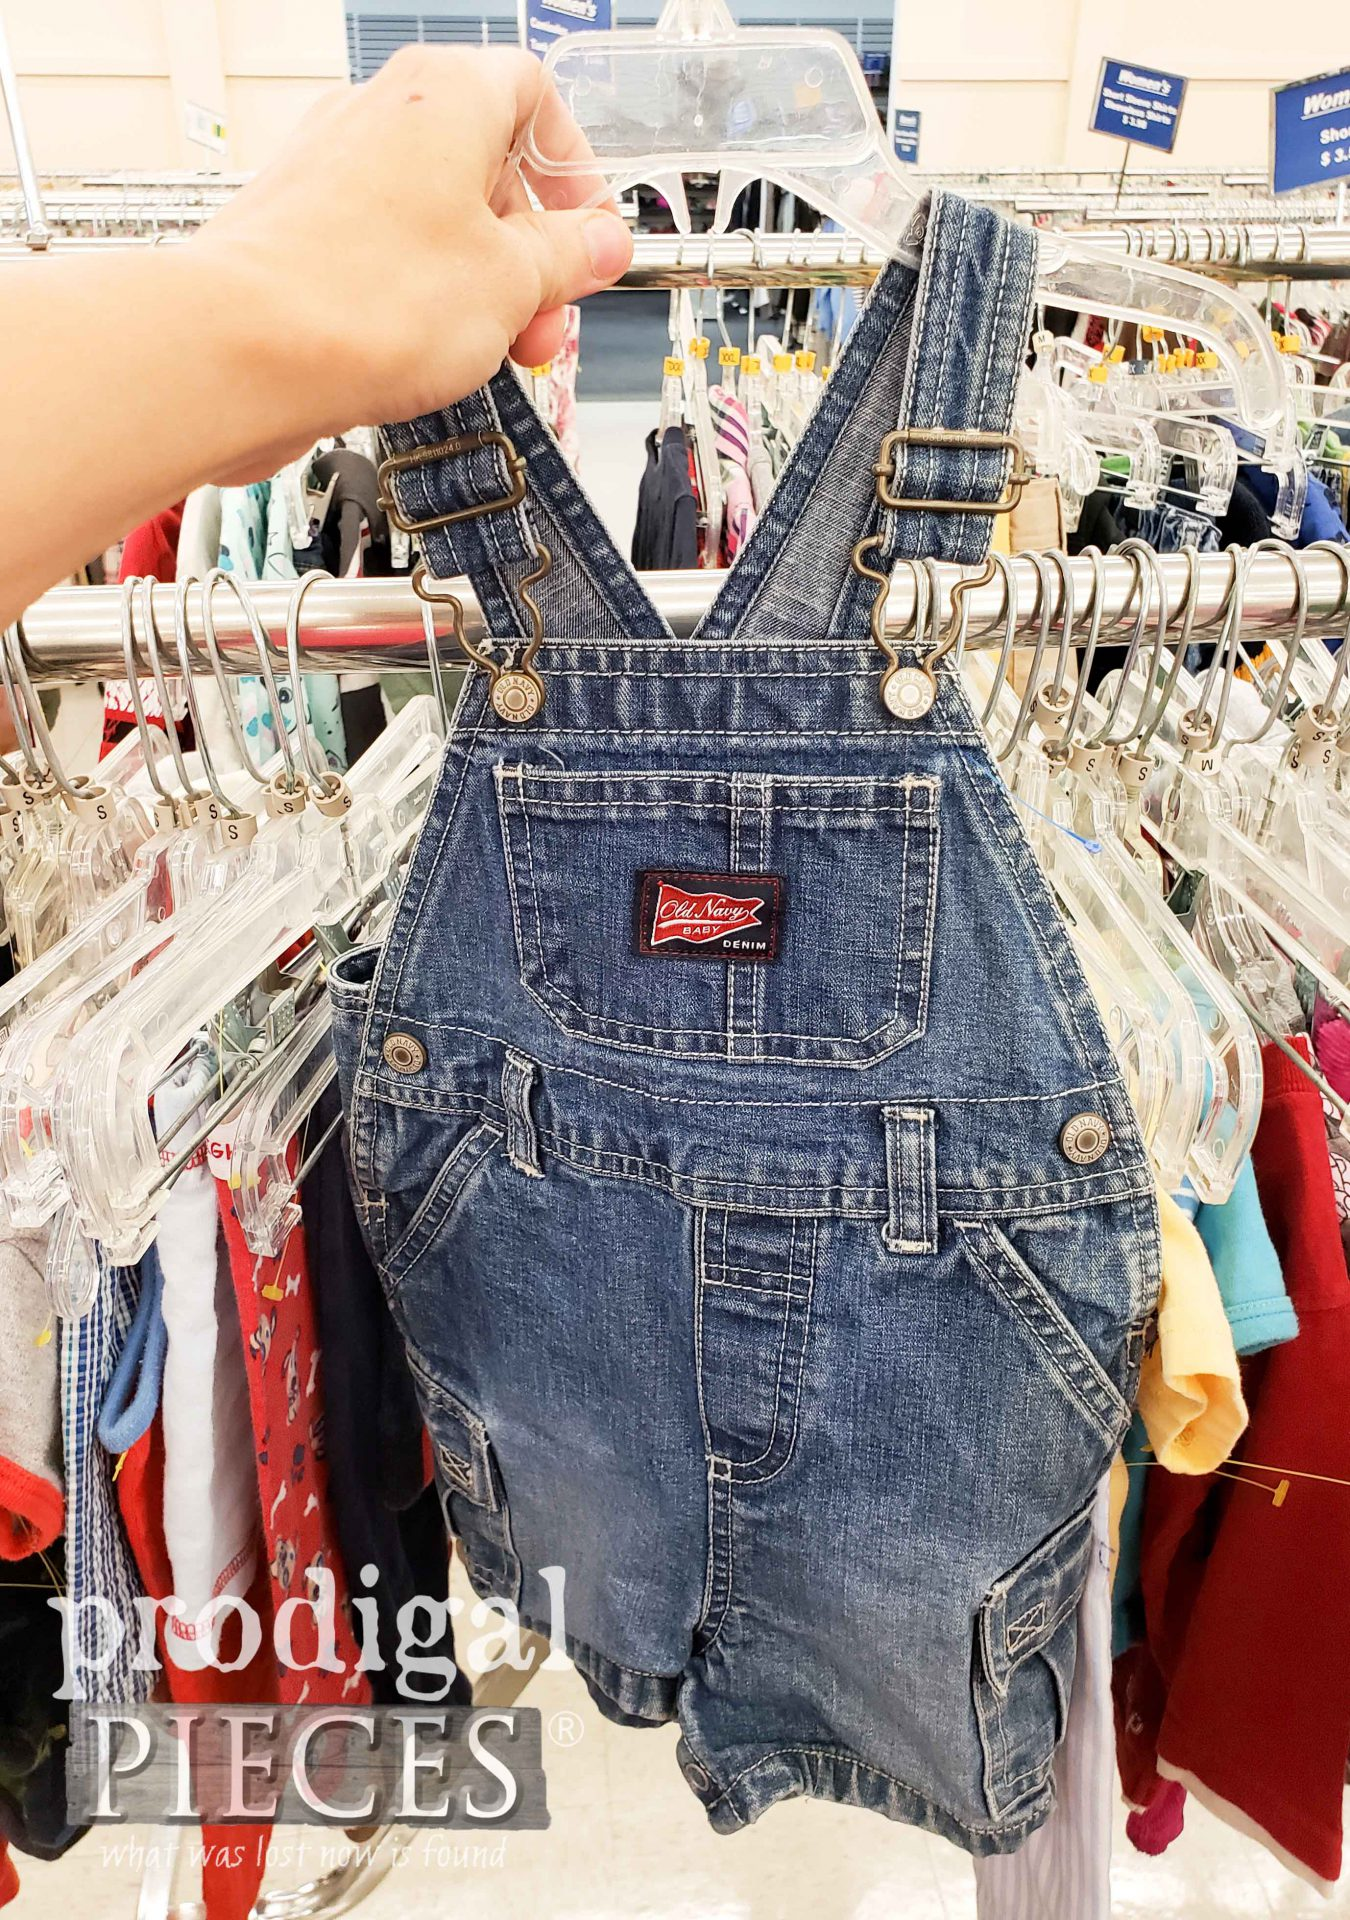 Thrifted Baby Bib Overalls Before Refashion by Prodigal Pieces | prodigalpieces.com